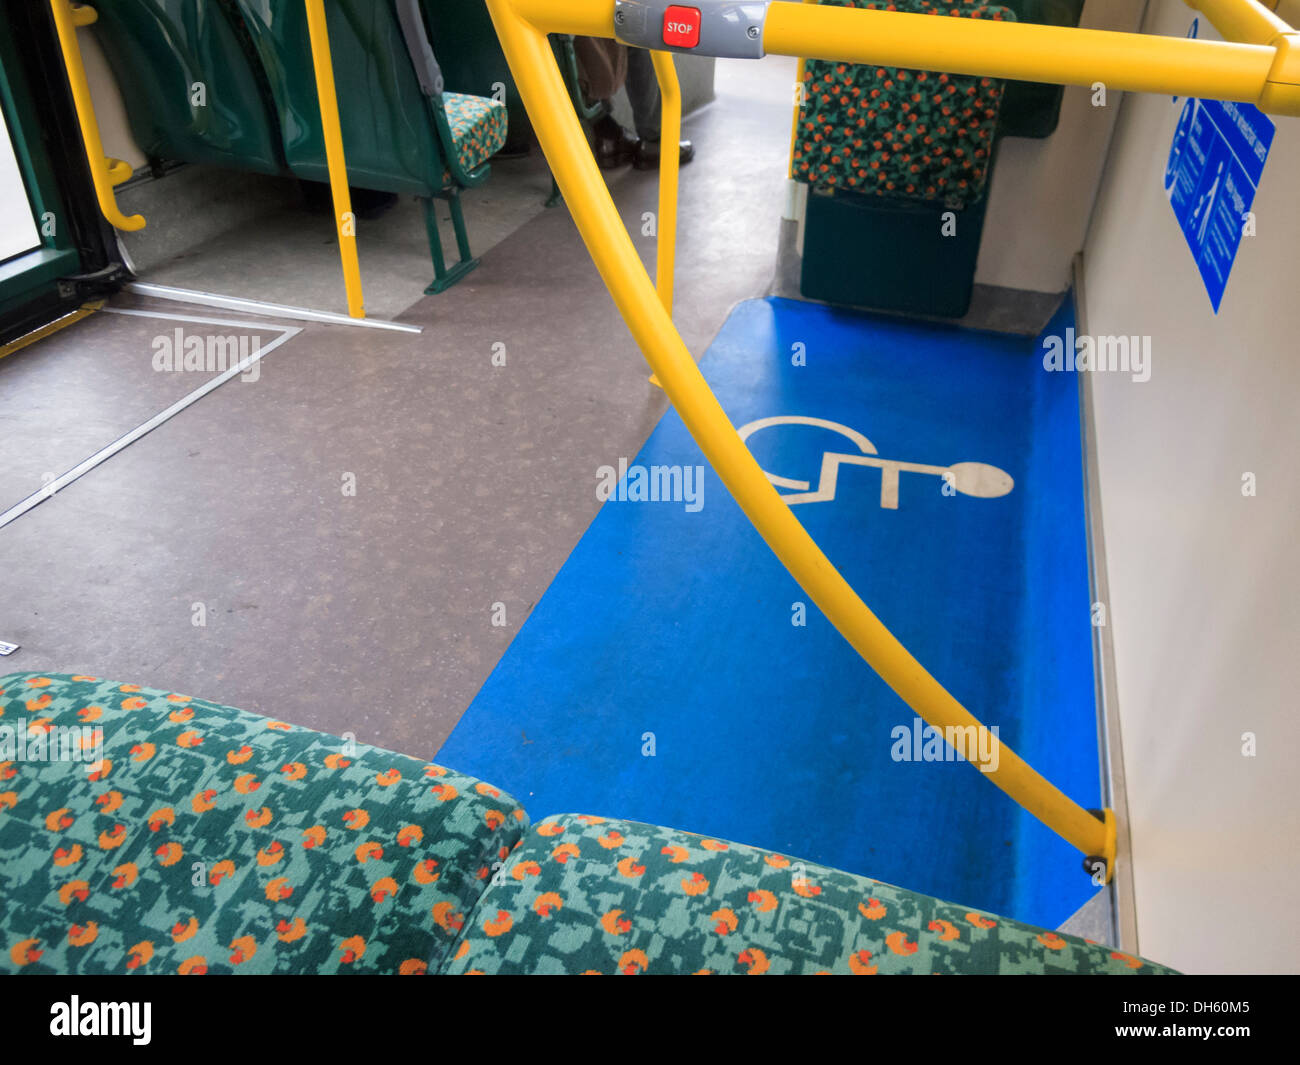 Transport London Bus Disabled space - Stock Image